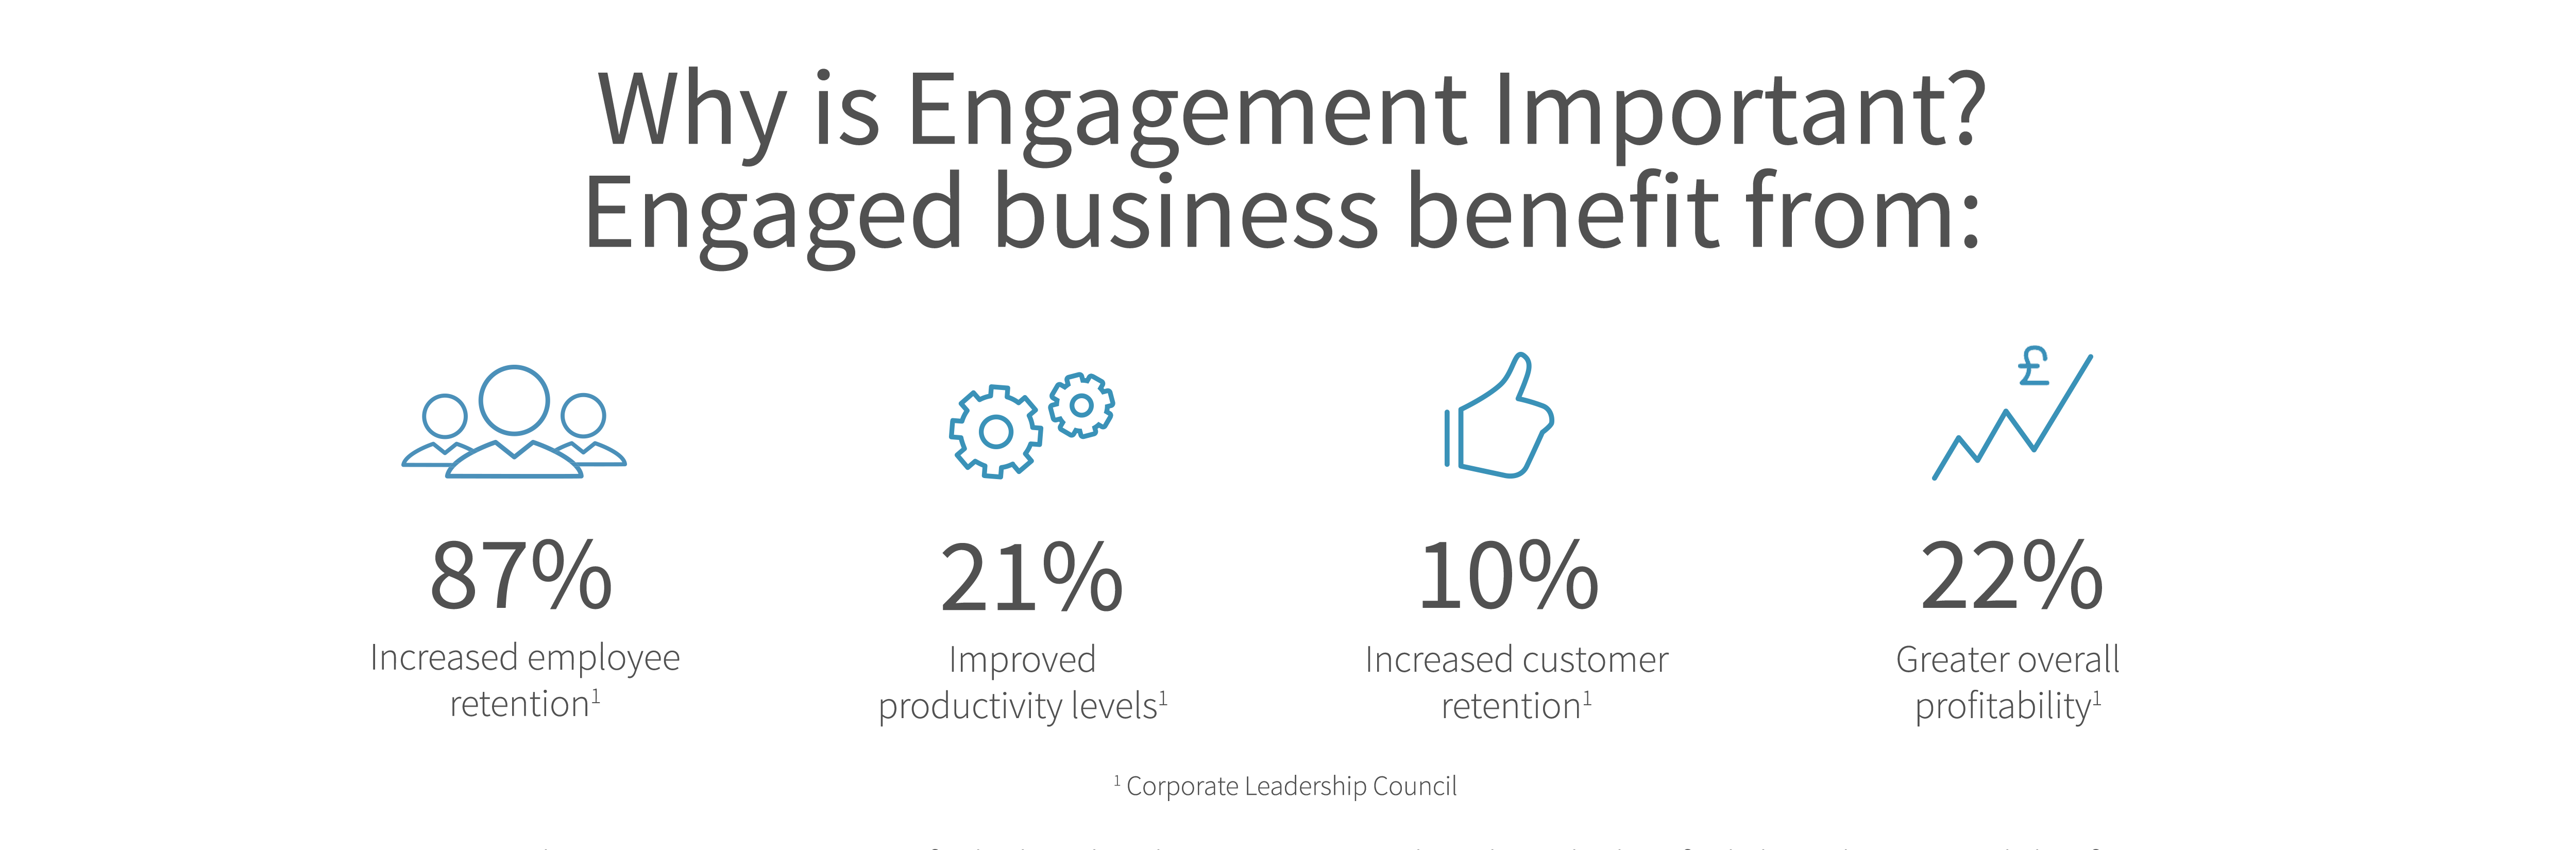 Engagement is Important graphic